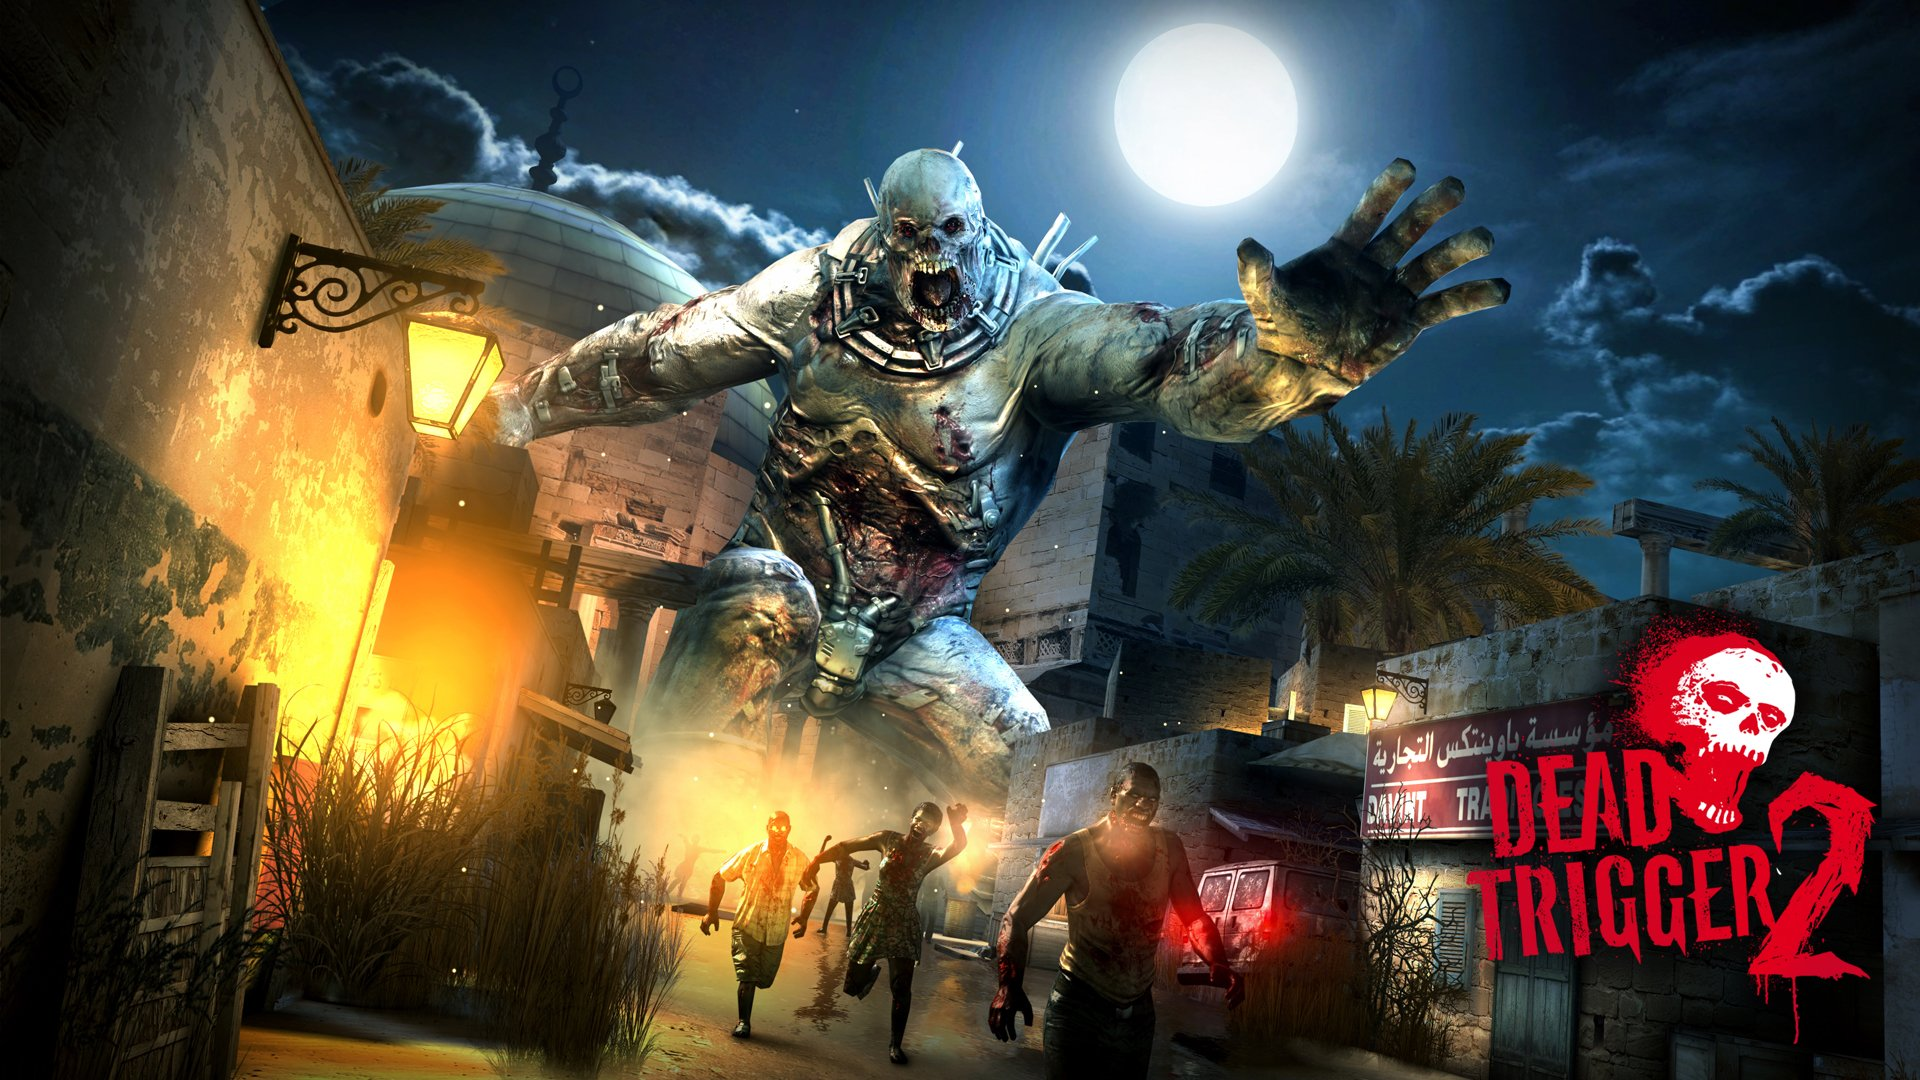 Dead Trigger 2 Hd Wallpaper Background Image 1920x1080 Id